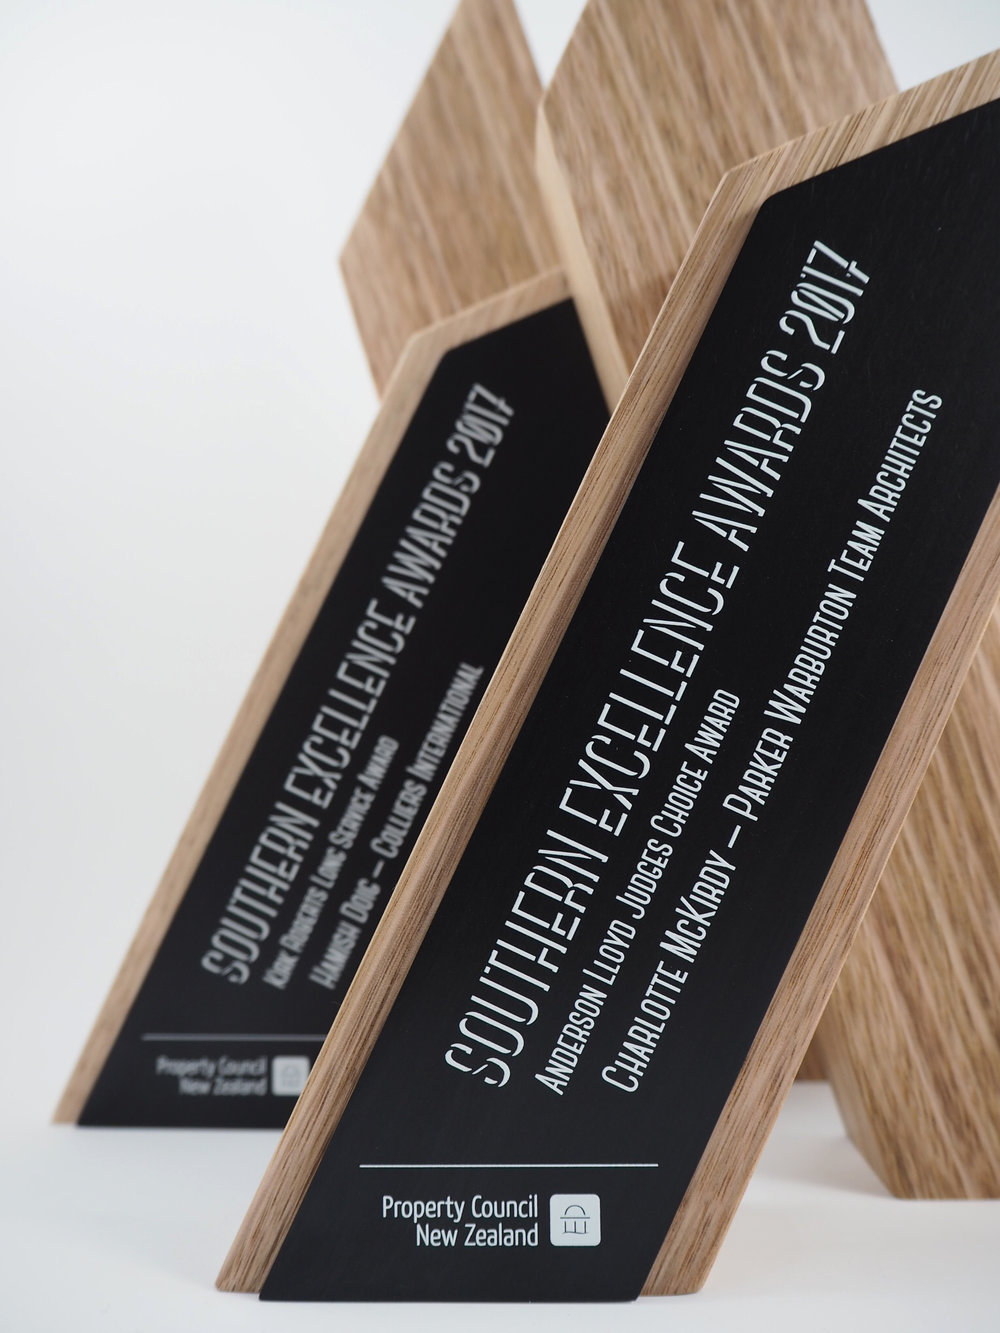 property-council-new-zealand-timber-eco-trophy-metal-award-02.jpg